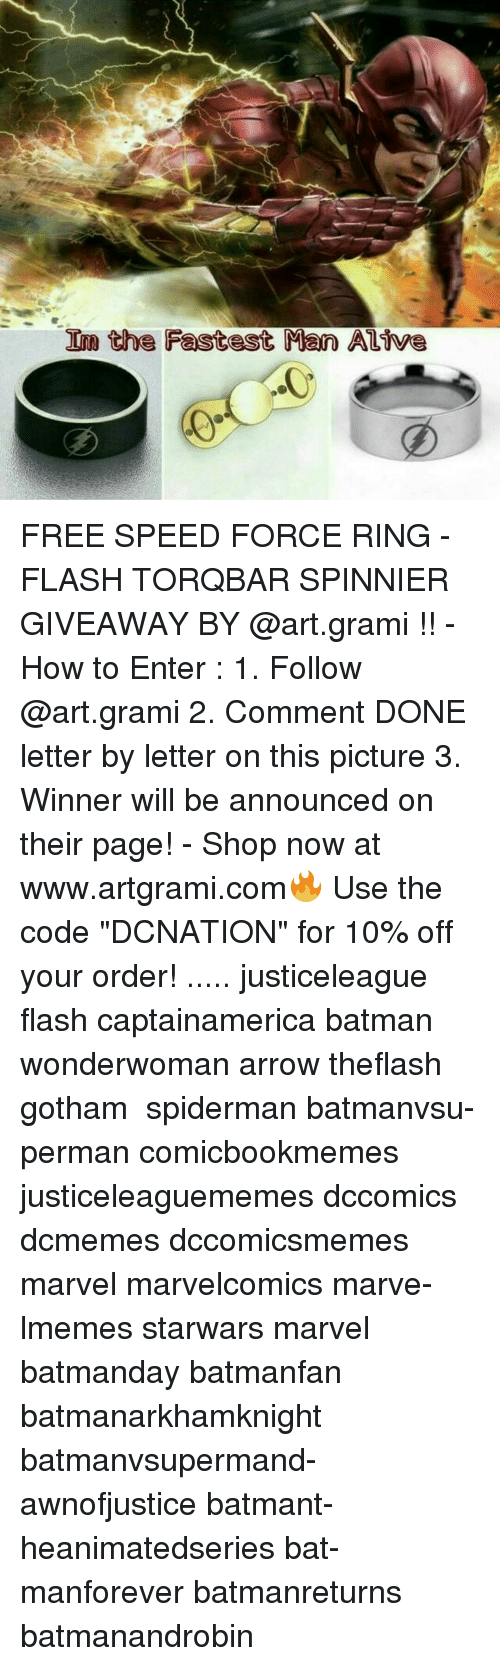 "Memes, 🤖, and Flash: Inn the Fastest Man Alive FREE SPEED FORCE RING - FLASH TORQBAR SPINNIER GIVEAWAY BY @art.grami !! - How to Enter : 1. Follow @art.grami 2. Comment DONE letter by letter on this picture 3. Winner will be announced on their page! - Shop now at www.artgrami.com🔥 Use the code ""DCNATION"" for 10% off your order! ..... justiceleague flash­ captainamerica bat­man wonderwoman arr­ow theflash gotham ­ spiderman batmanvsu­perman comicbookmeme­s justiceleaguememes­ dccomics dcmemes ­dccomicsmemes marvel­ marvelcomics marve­lmemes starwars mar­vel batmanday batma­nfan batmanarkhamkni­ght batmanvsupermand­awnofjustice batmant­heanimatedseries bat­manforever batmanret­urns batmanandrobin"